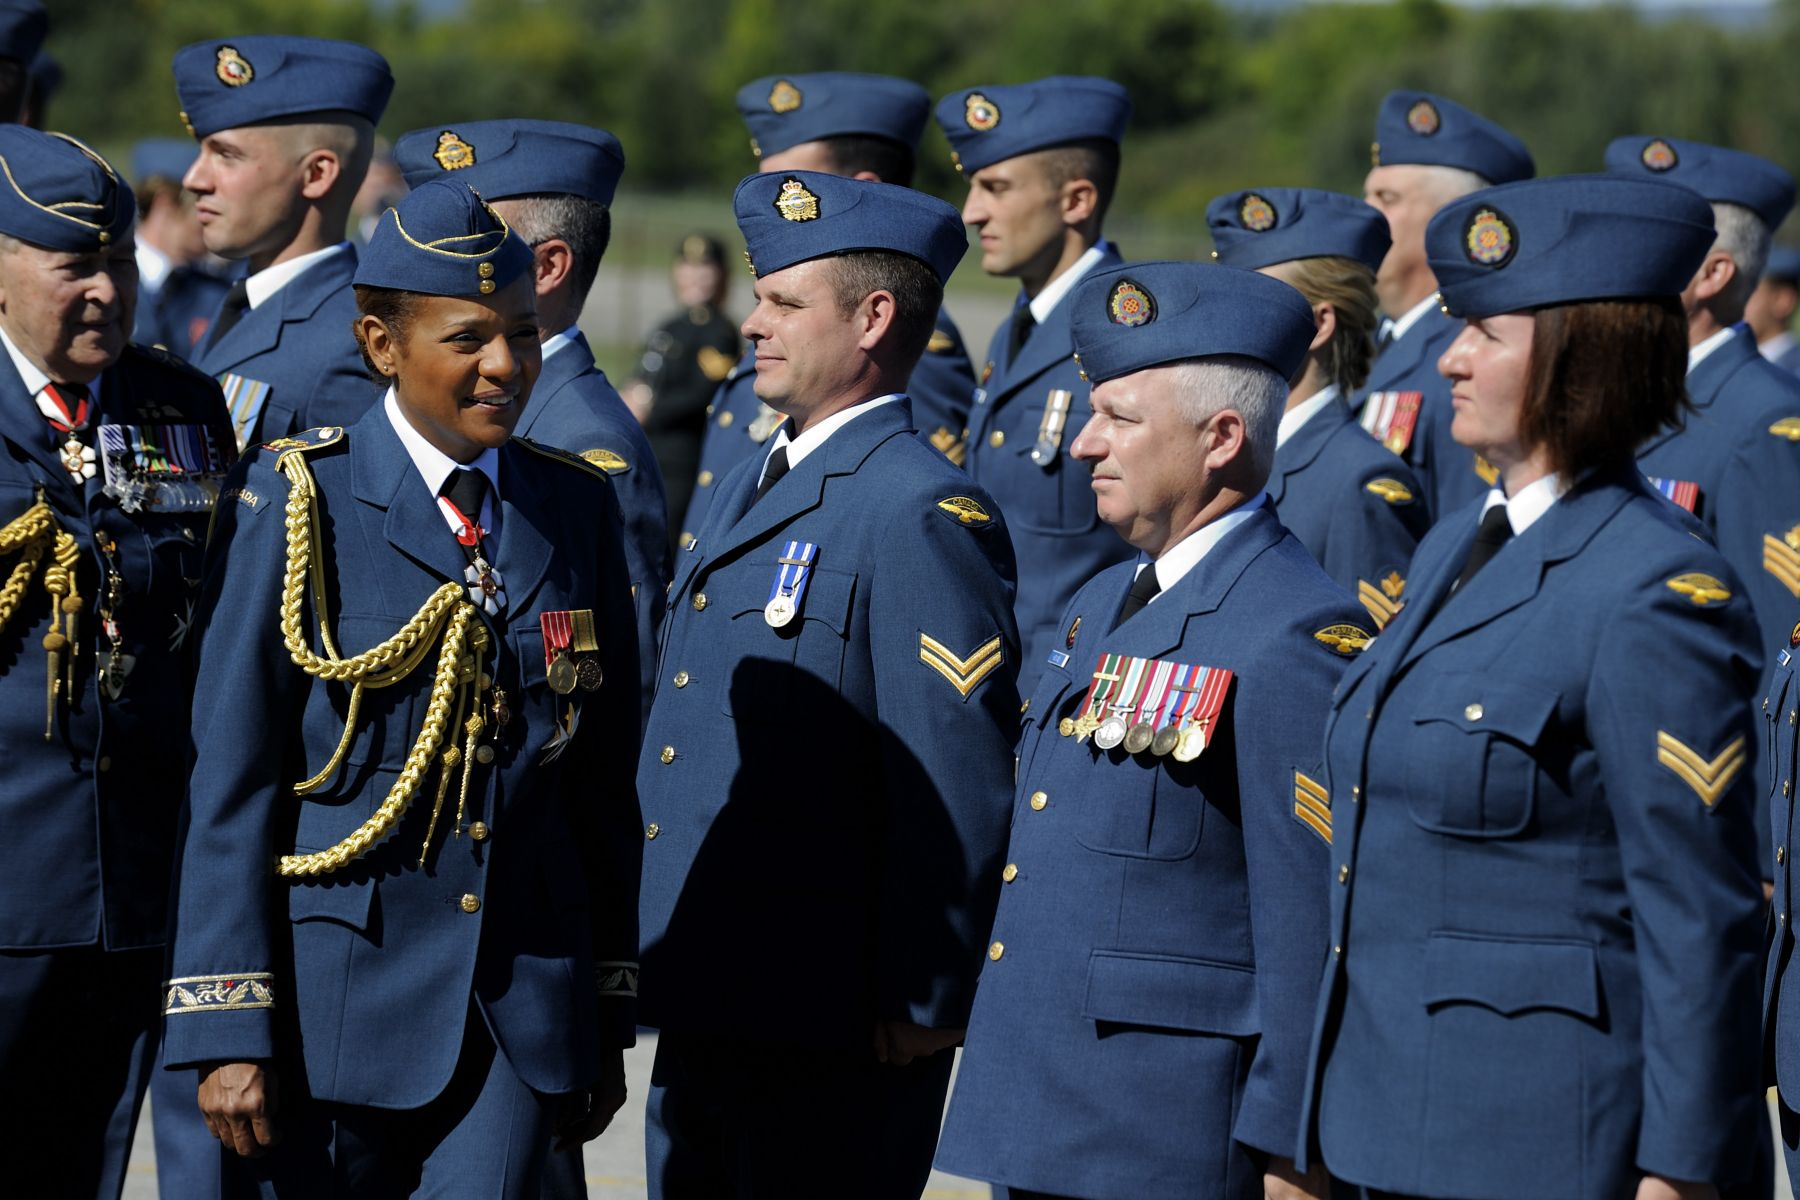 The Battle of Britain parade honours and commemorates the members of the Air Force who fought and died during the battle, as well as recognizes all the men and women who continue to serve in the Air Force today.